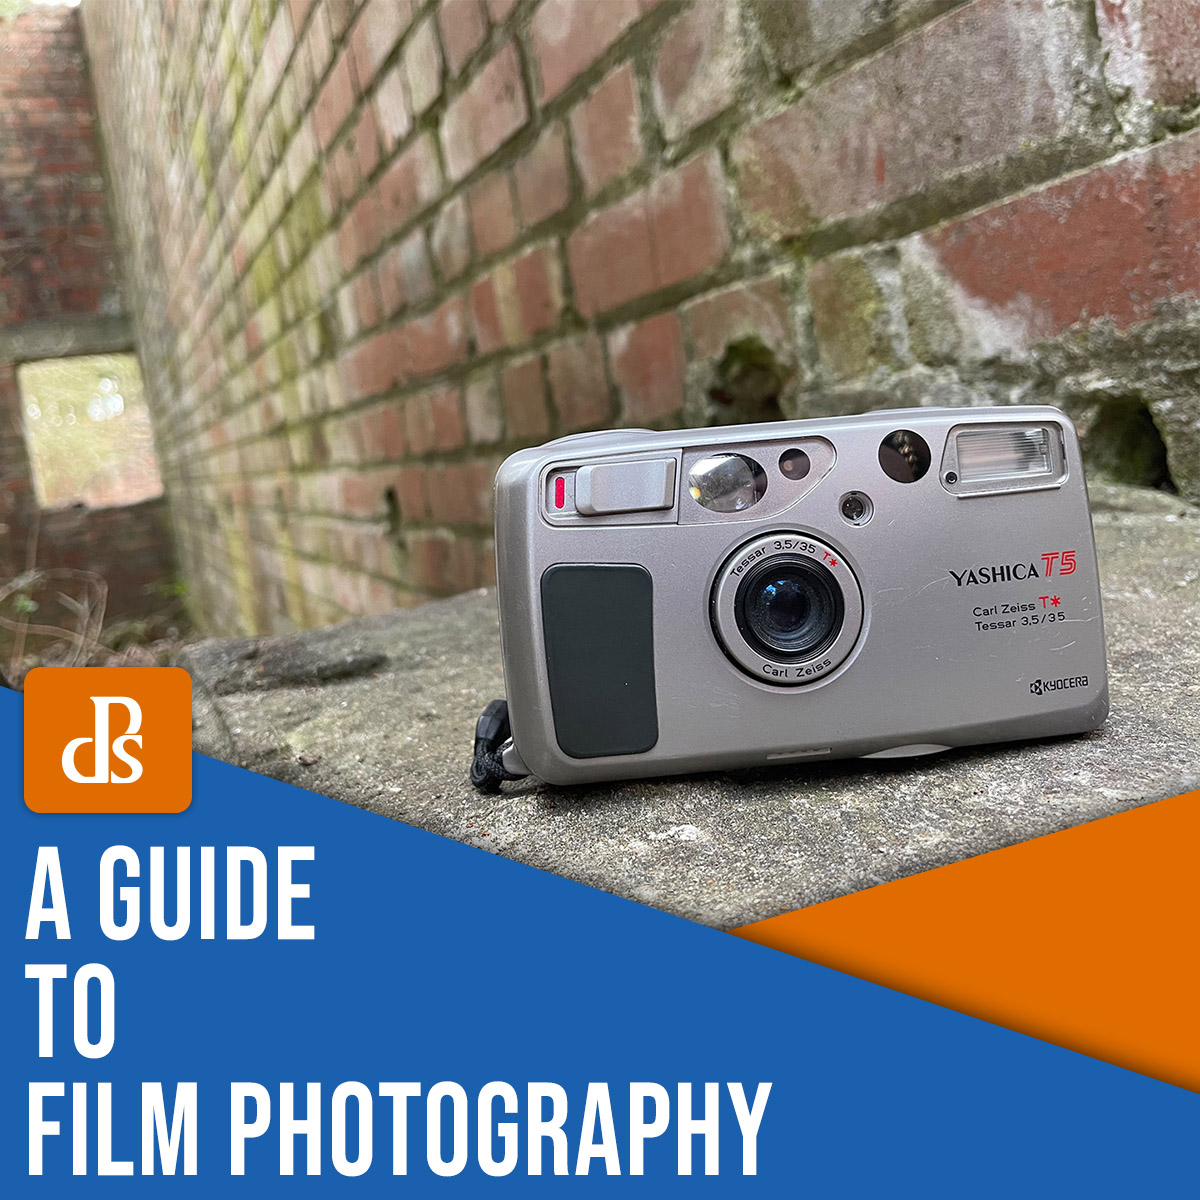 Film Photography: A Guide (and How to Get Started)